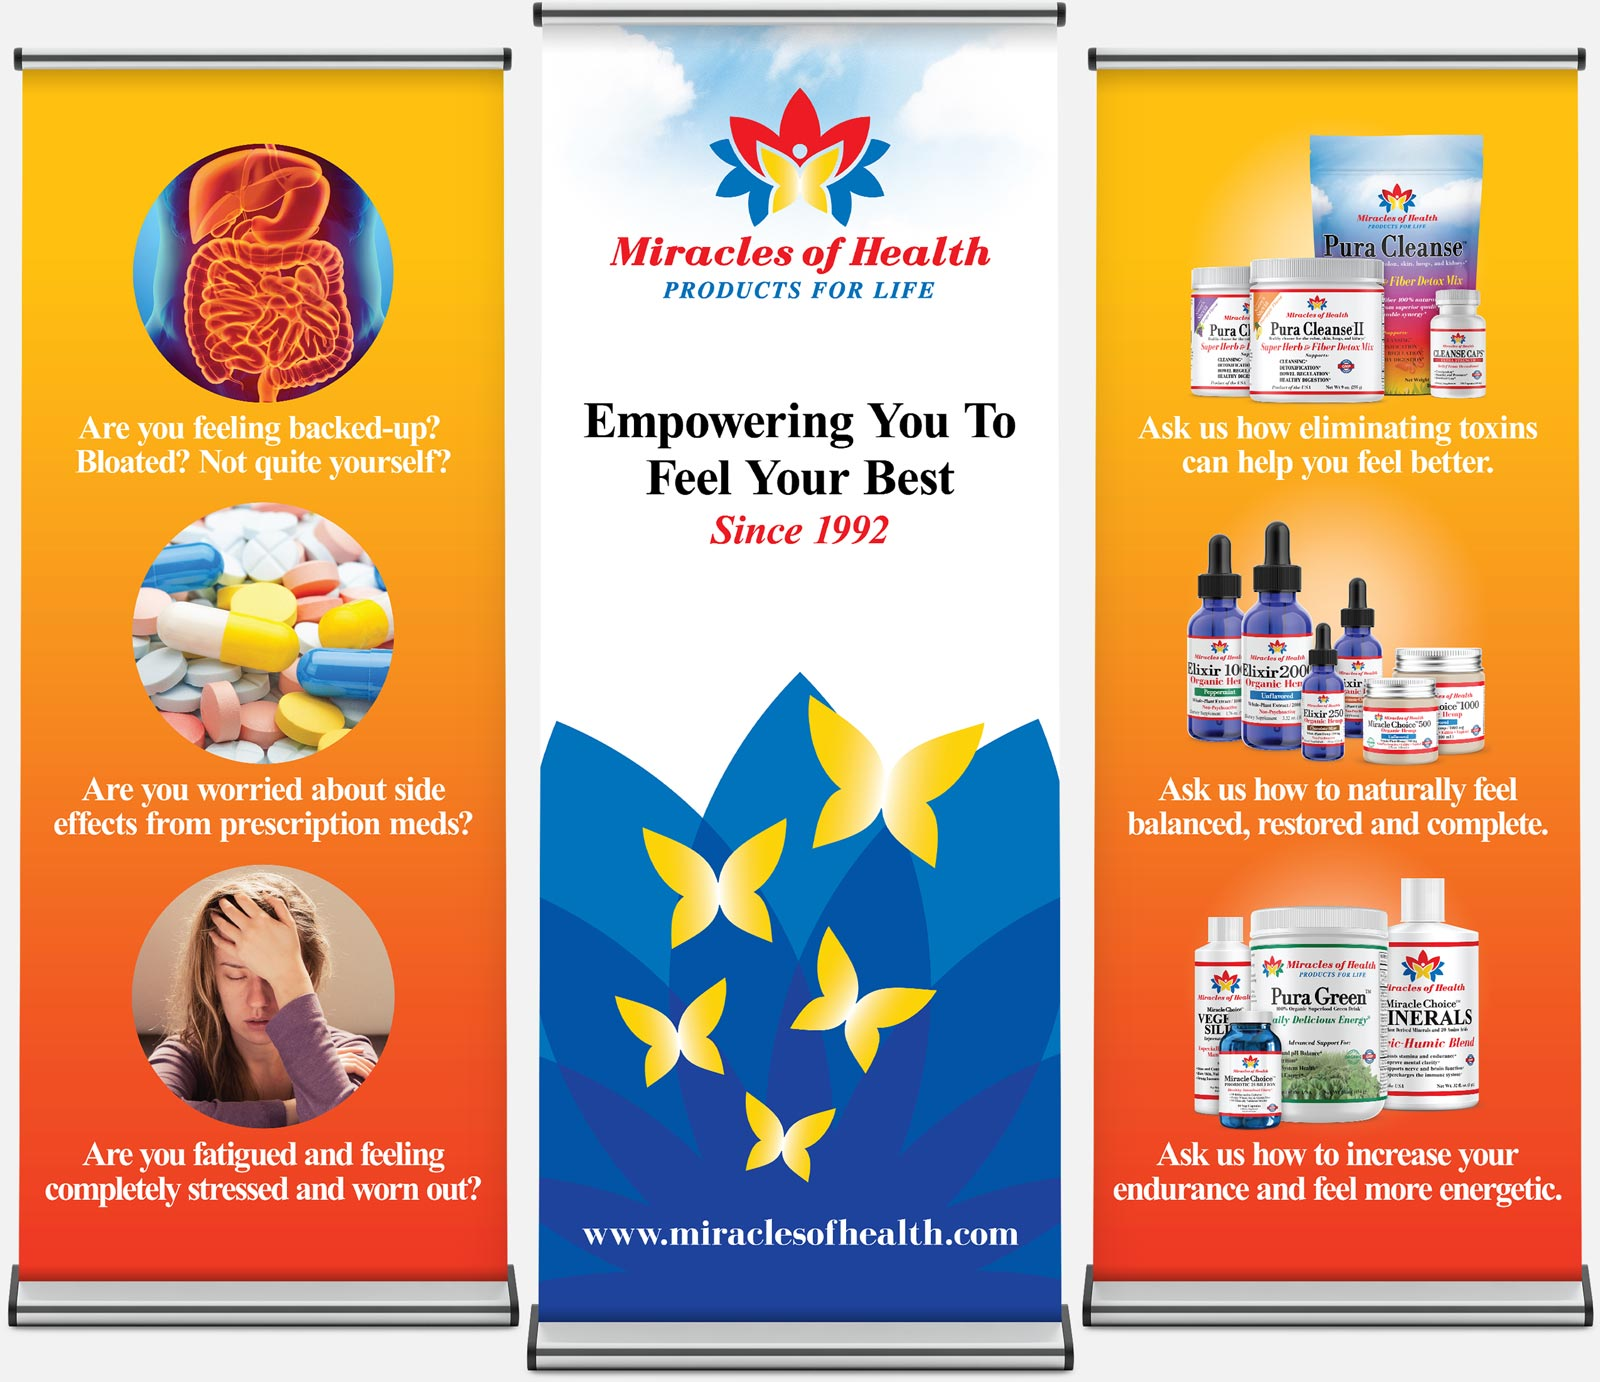 Branding retractable banner event displays for Miracles of Health